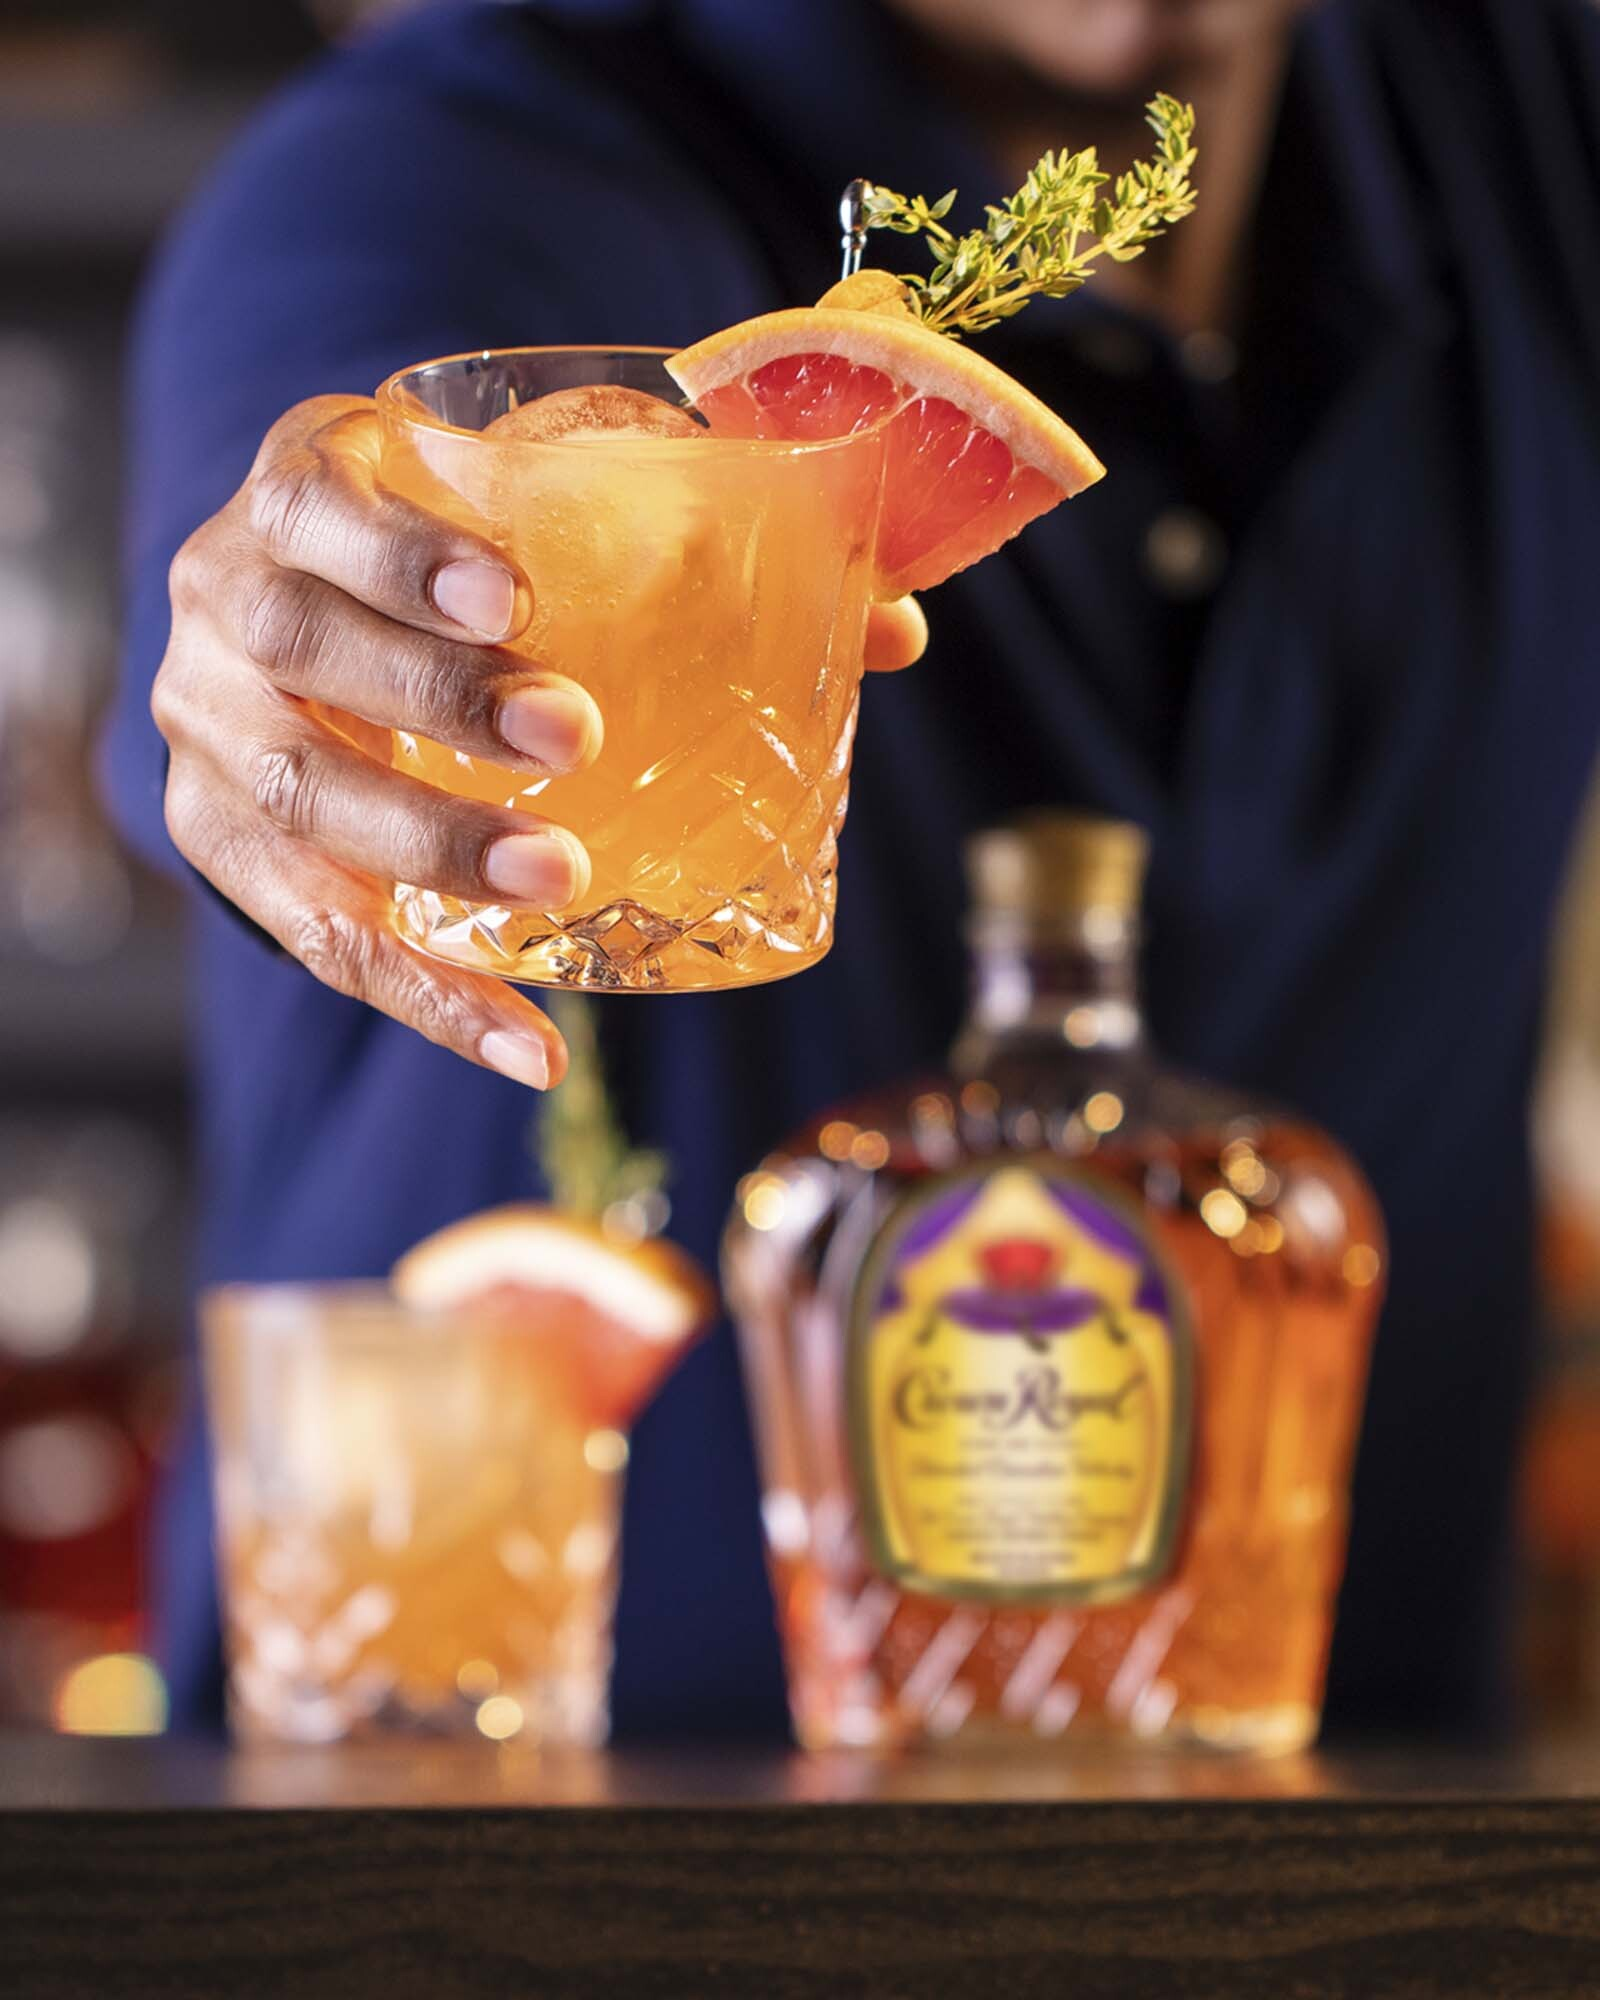 Crown Royal Grapefruit Old Fashioned Whisky Cocktail